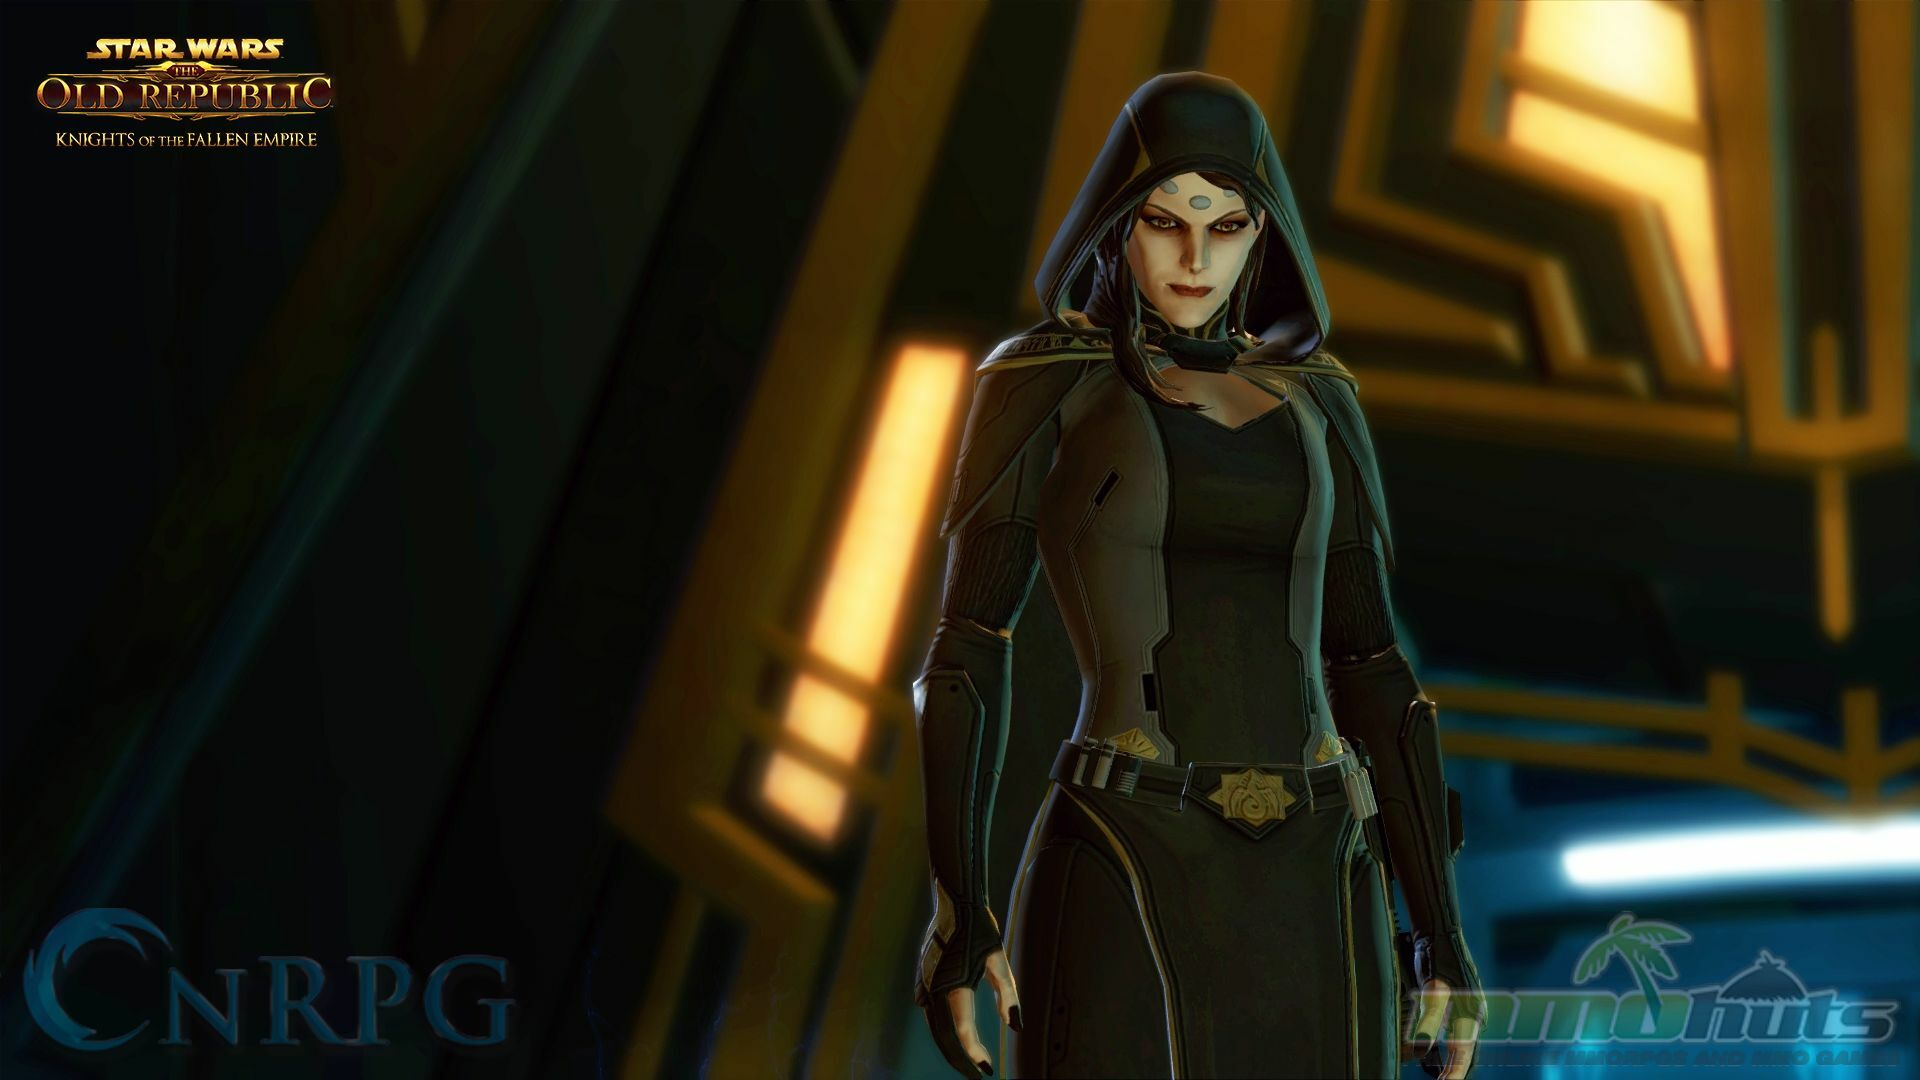 SWTOR: Knights of the Fallen Empire Press Event Preview